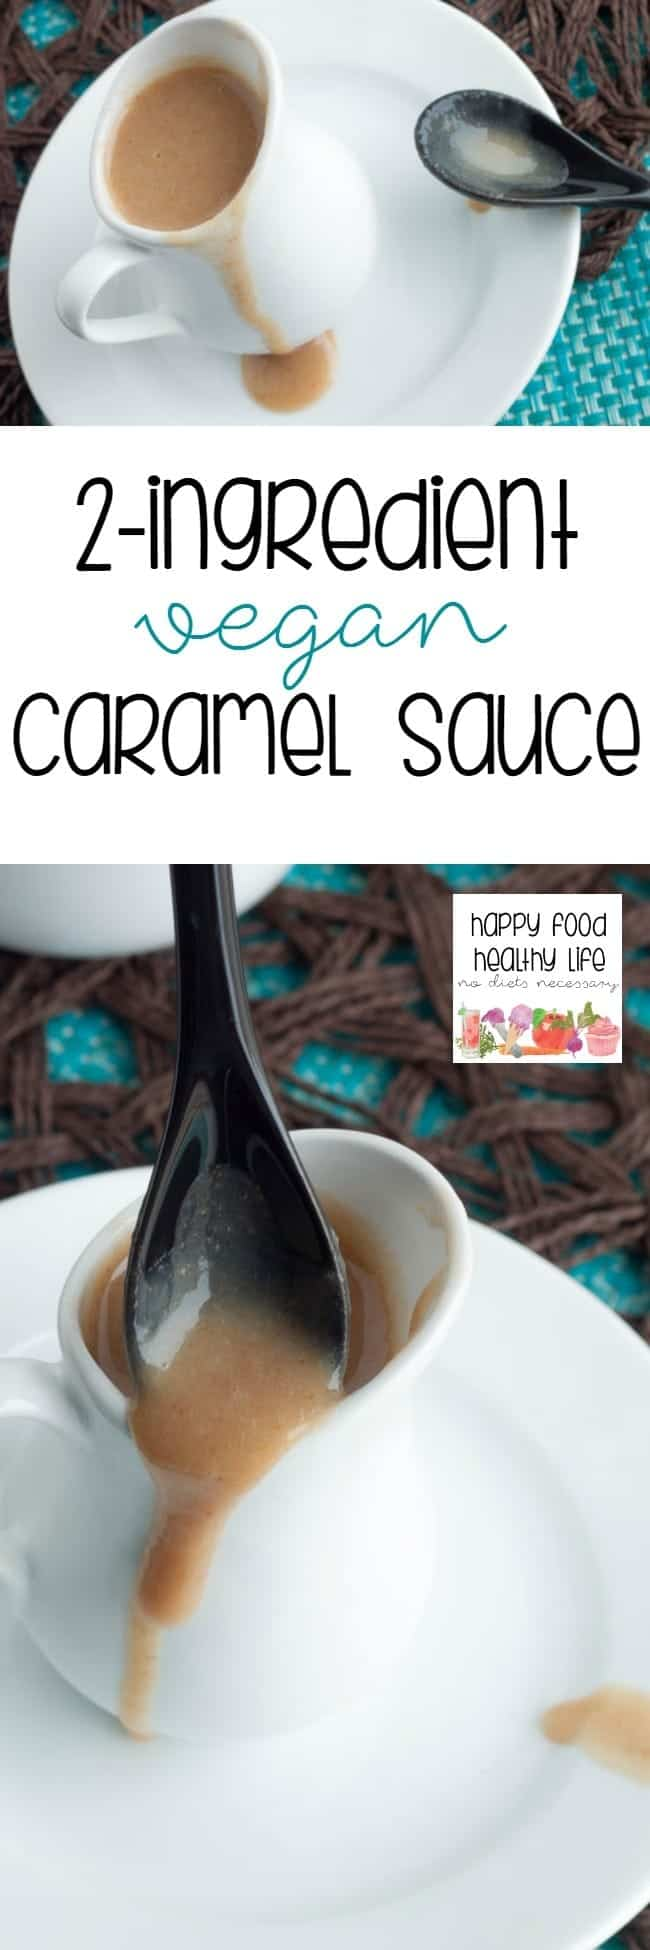 2-Ingredient Vegan Caramel Sauce - 2 healthy ingredients come together in just minutes to bring you a caramel sauce to top your ice cream, cakes, and parfaits without the guilt!